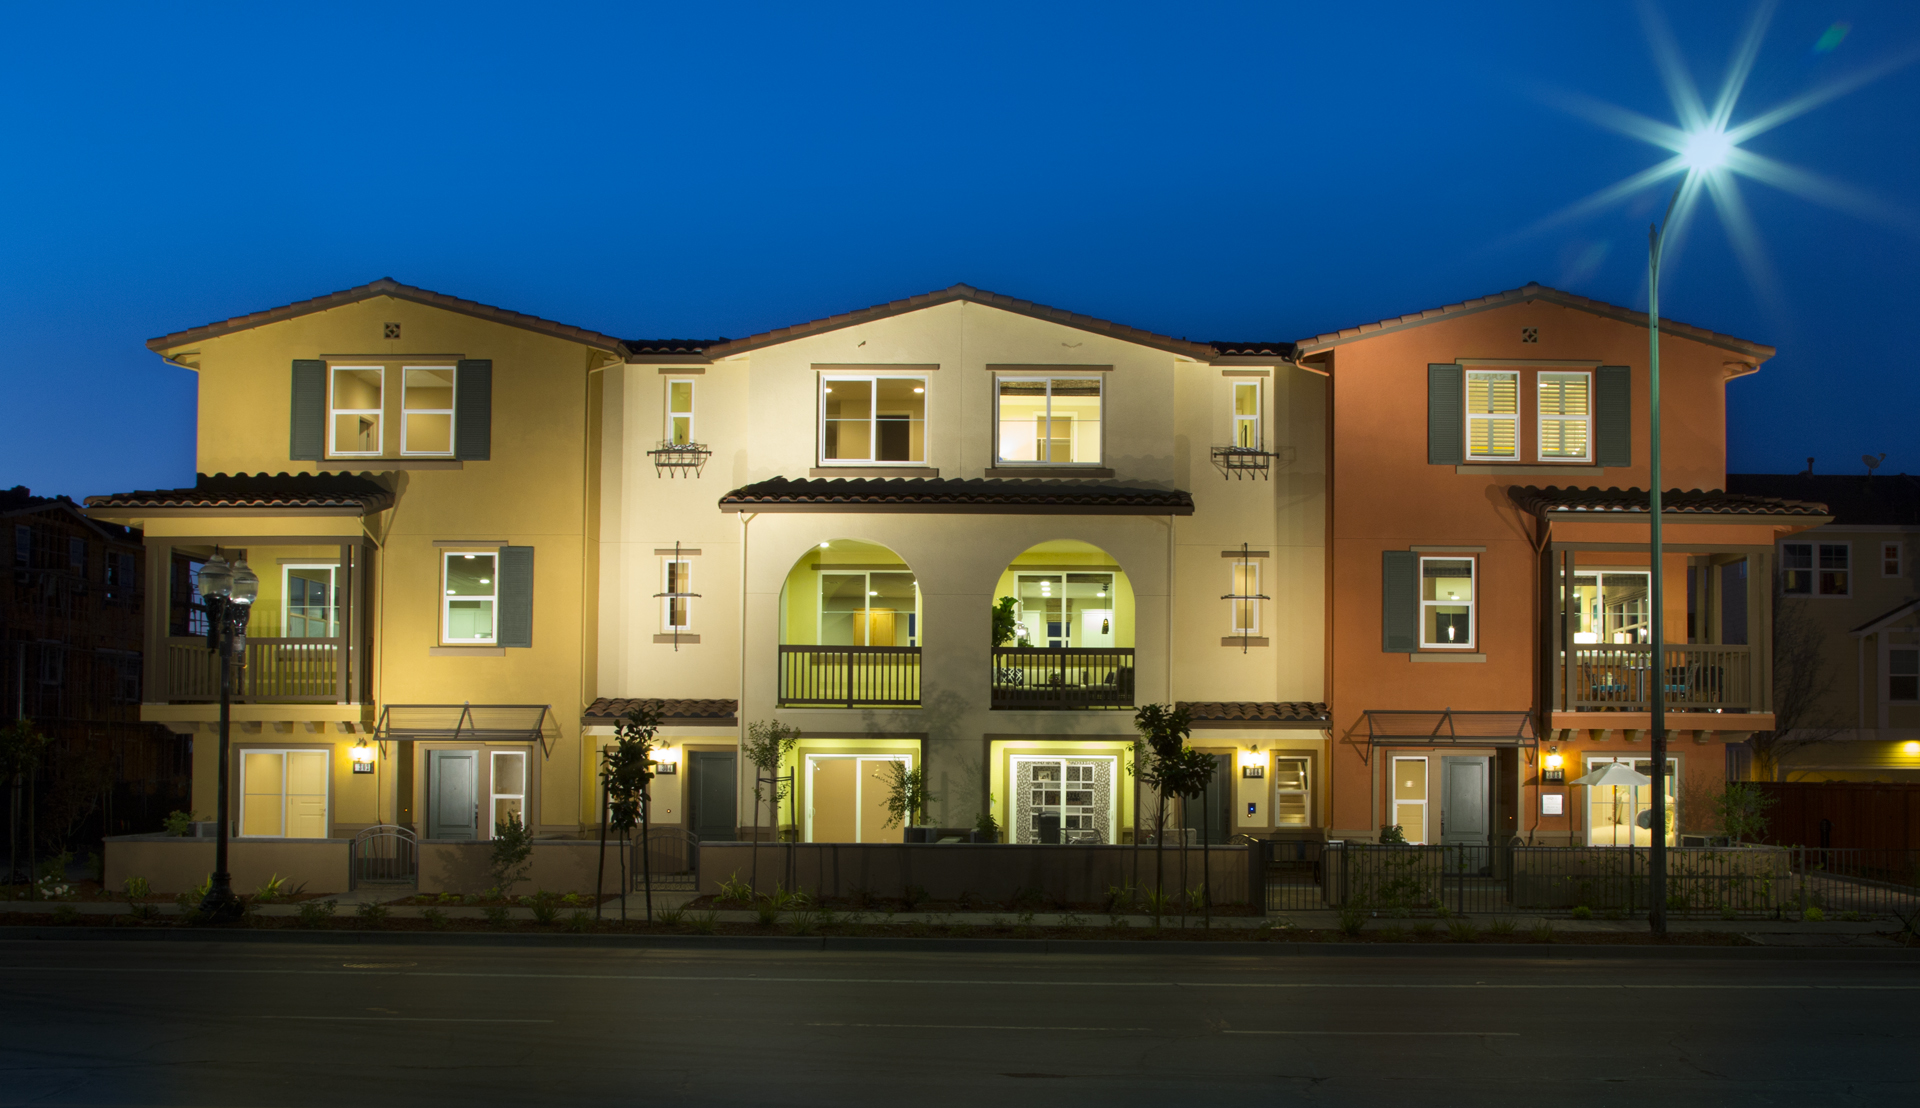 Sunnyvale Ca A Beautiful Community Full Of New Homes